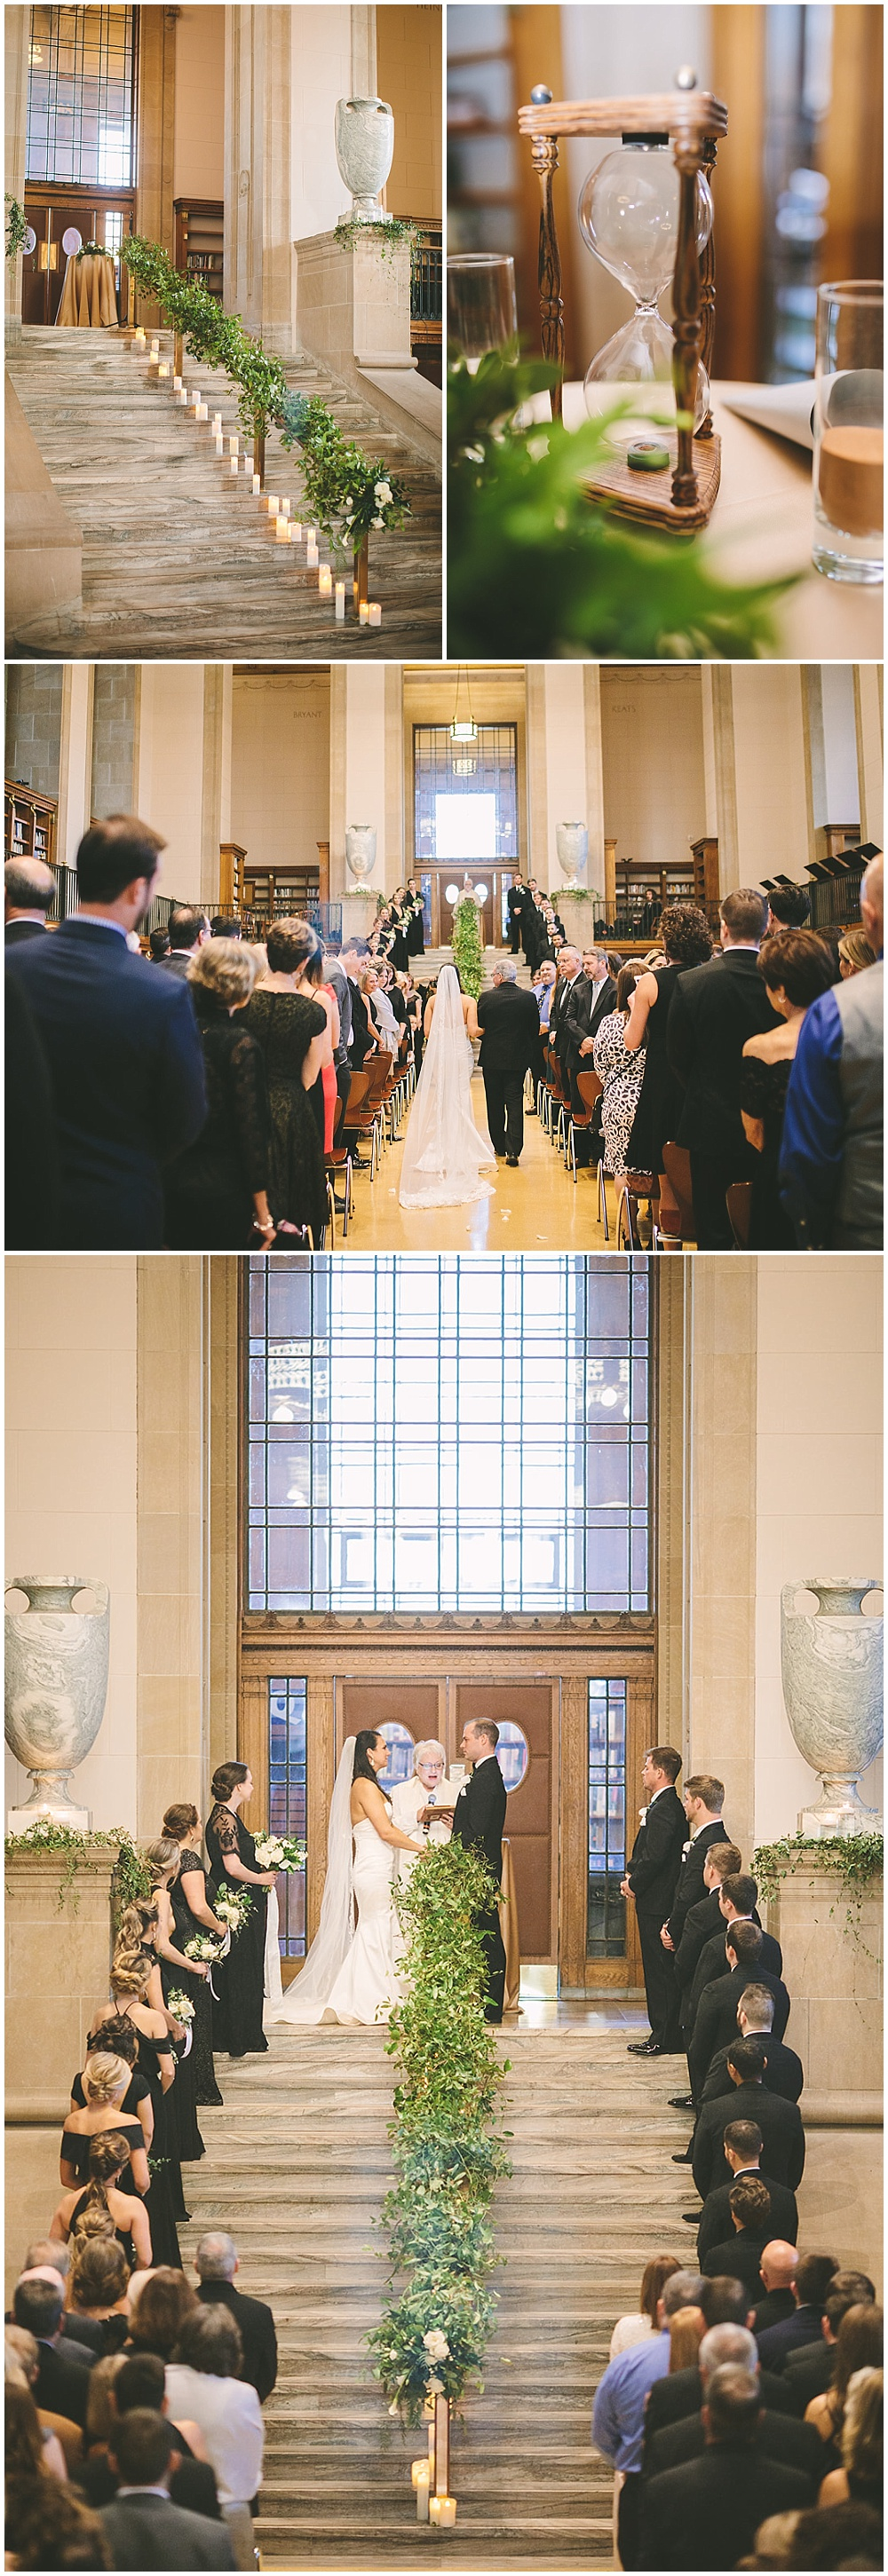 A timeless, modern wedding celebration at the Indianapolis Public Library. A black and white wedding with gold accents and draped greenery down the ceremony aisle. | Jessica Dum Wedding Coordination